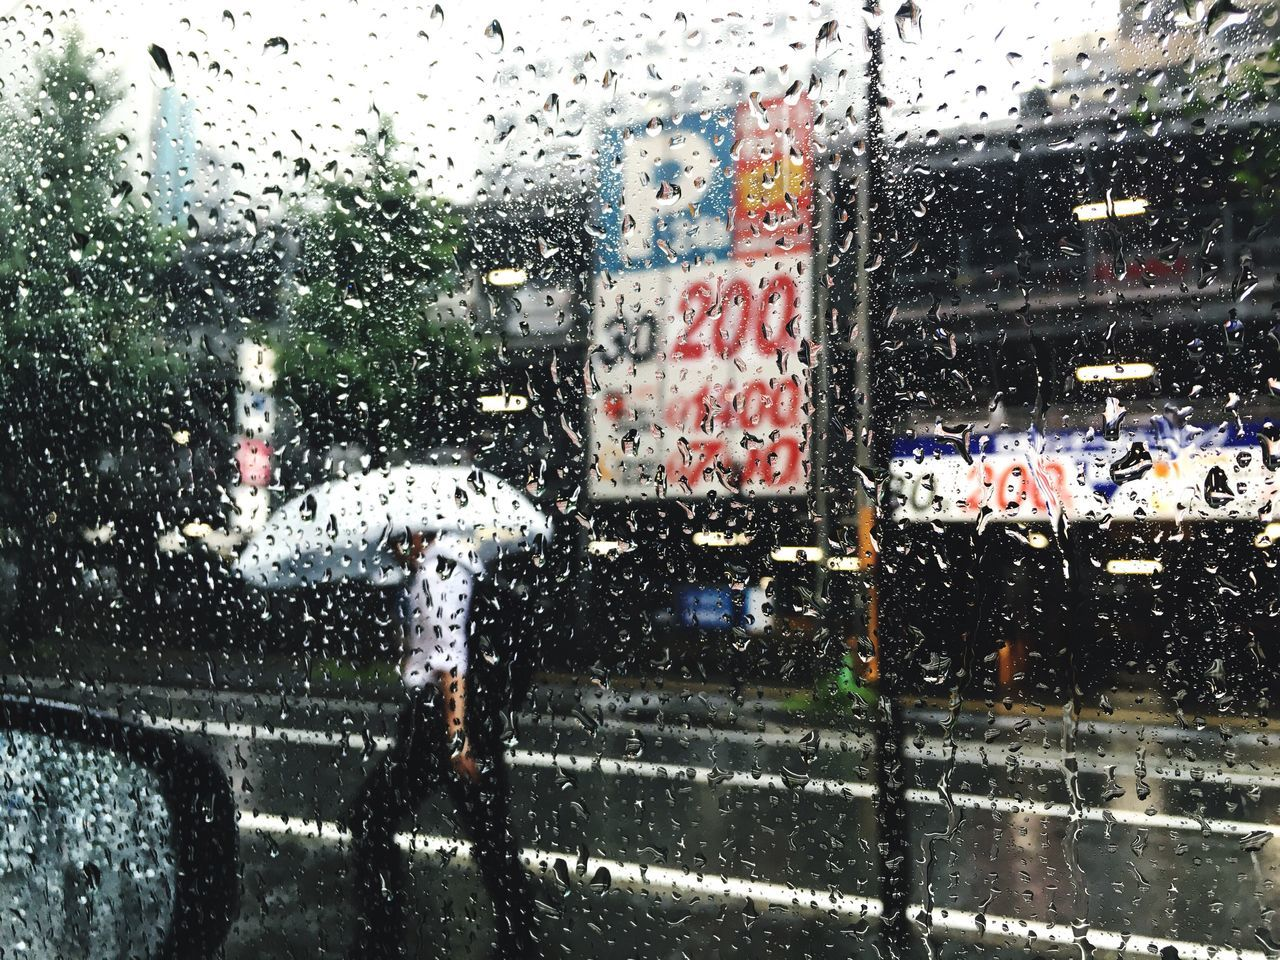 Road Seen Through Wet Window In Rainy Season